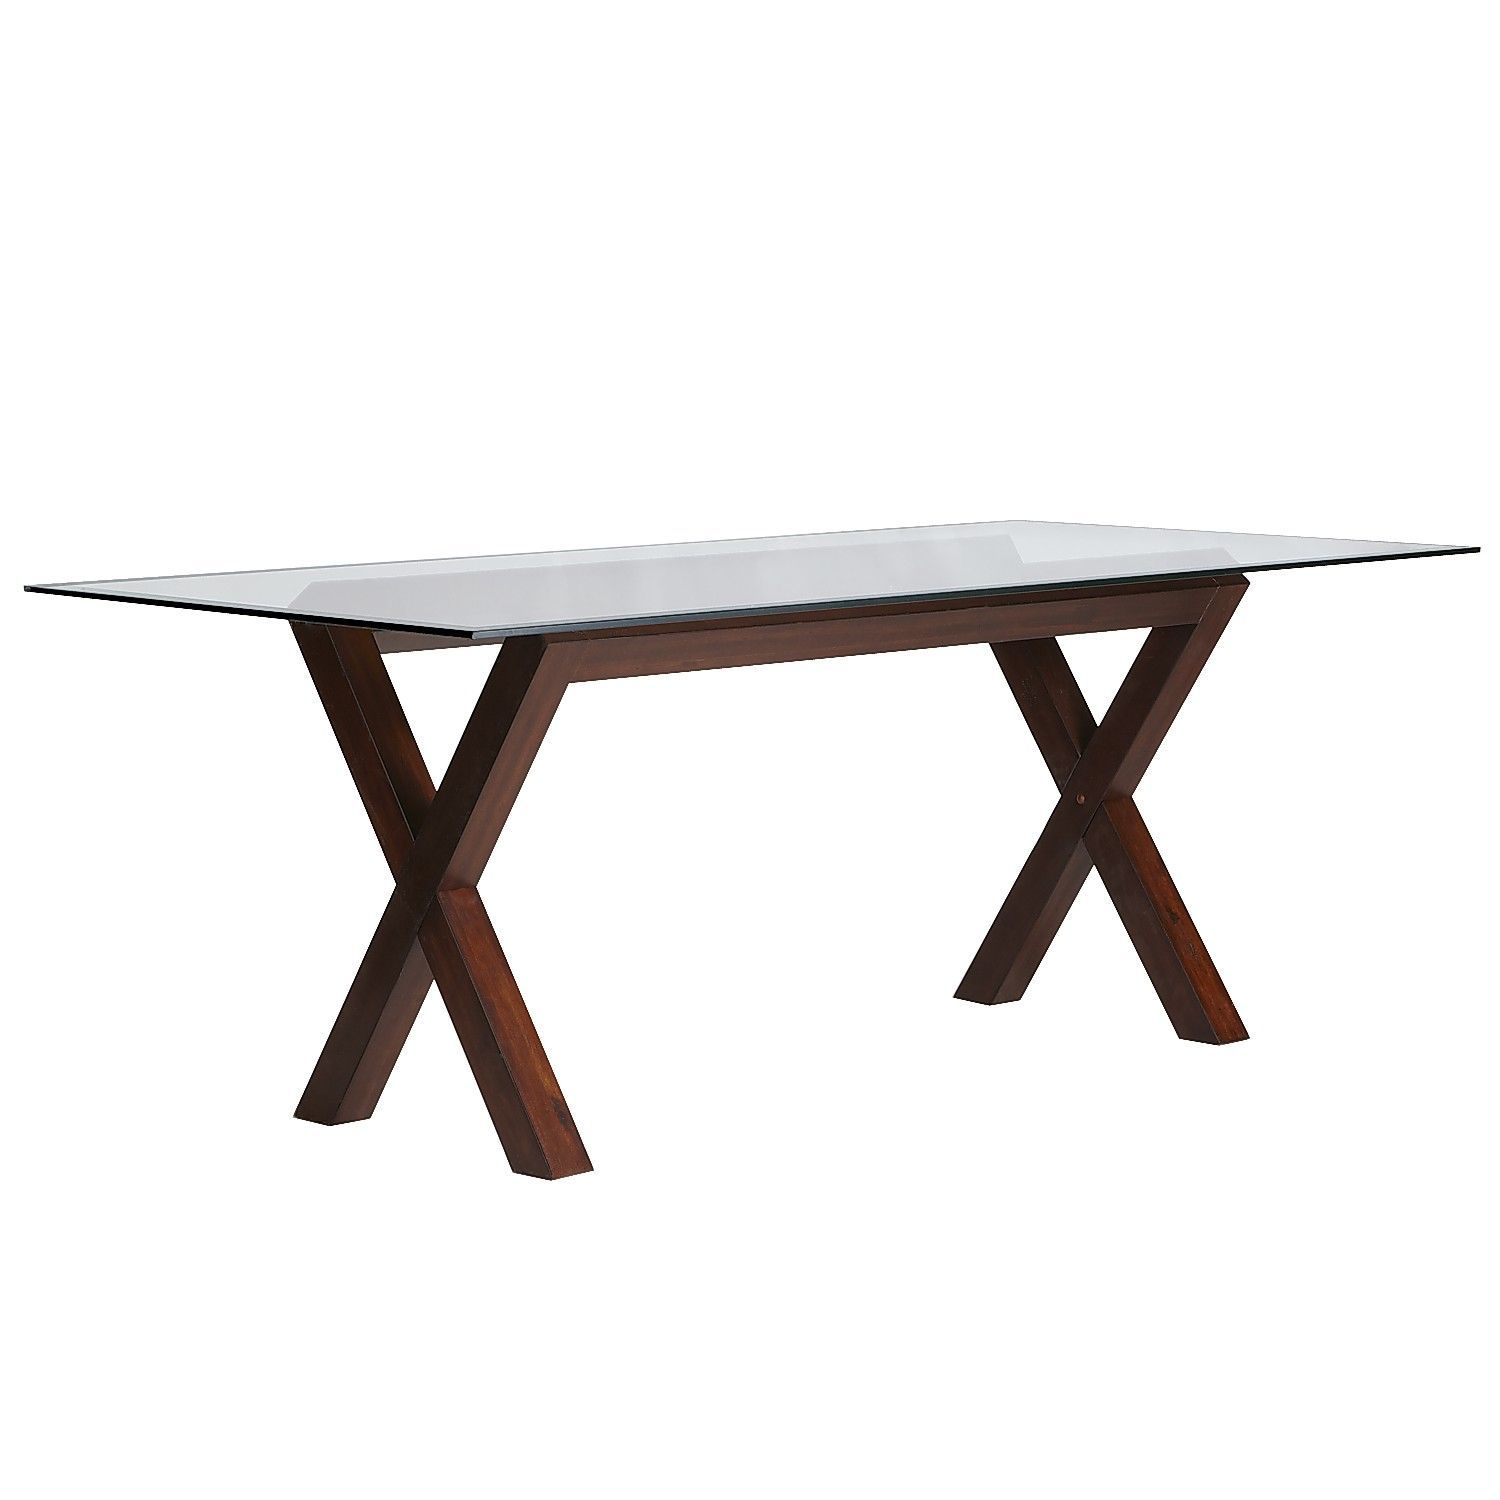 Bennett Dining Table Base - Mahogany Brown Pier 1 $199.99 ...